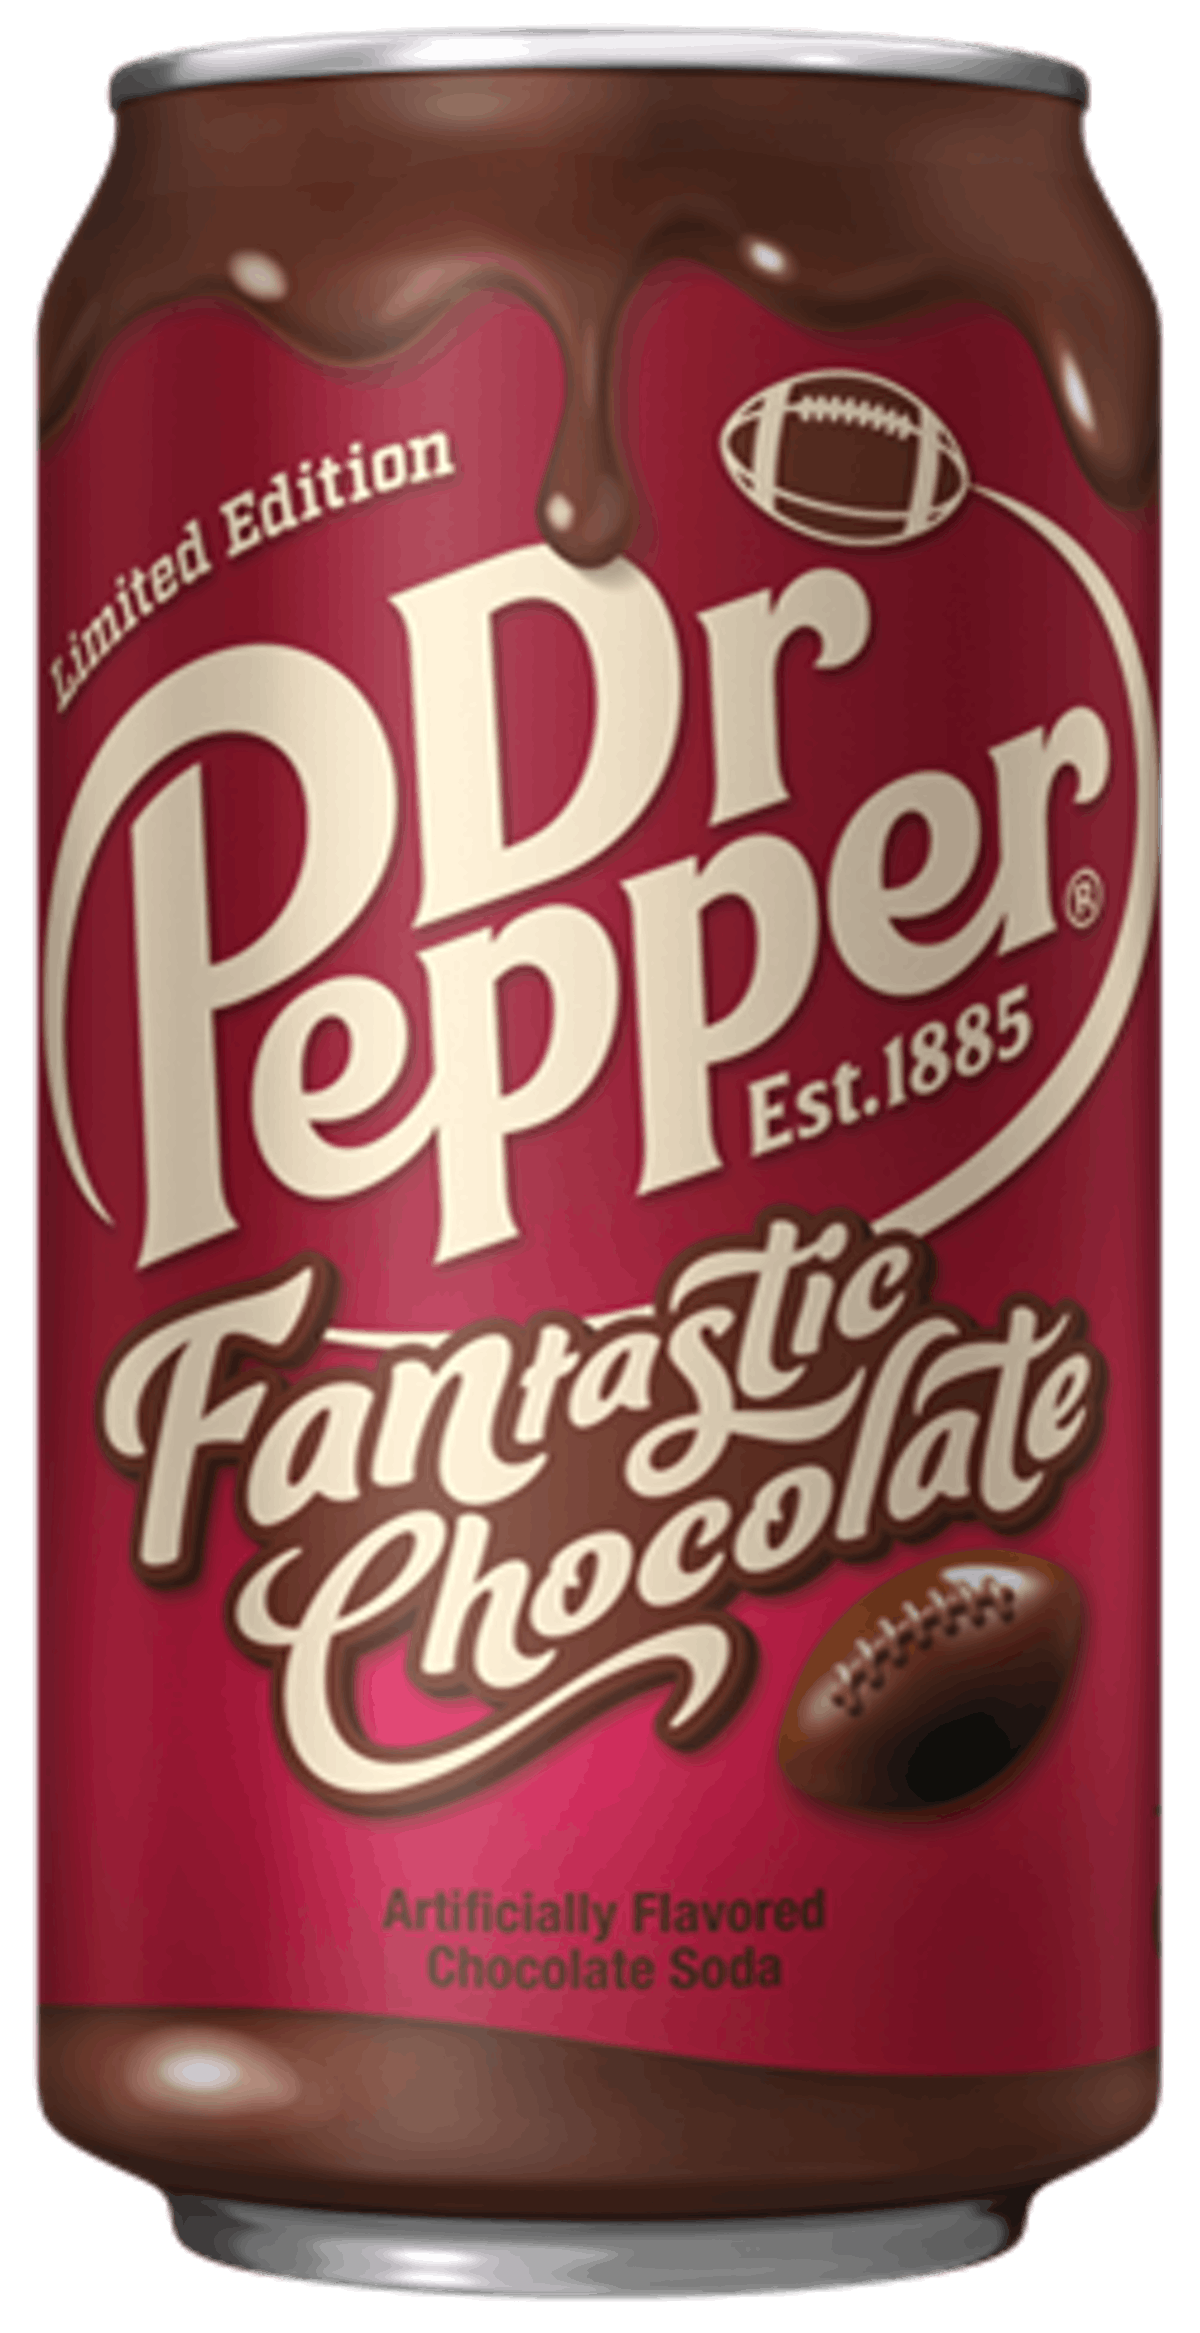 Here's where to get Dr. Pepper Fantastic Chocolate soda because it isn't heading to stores.